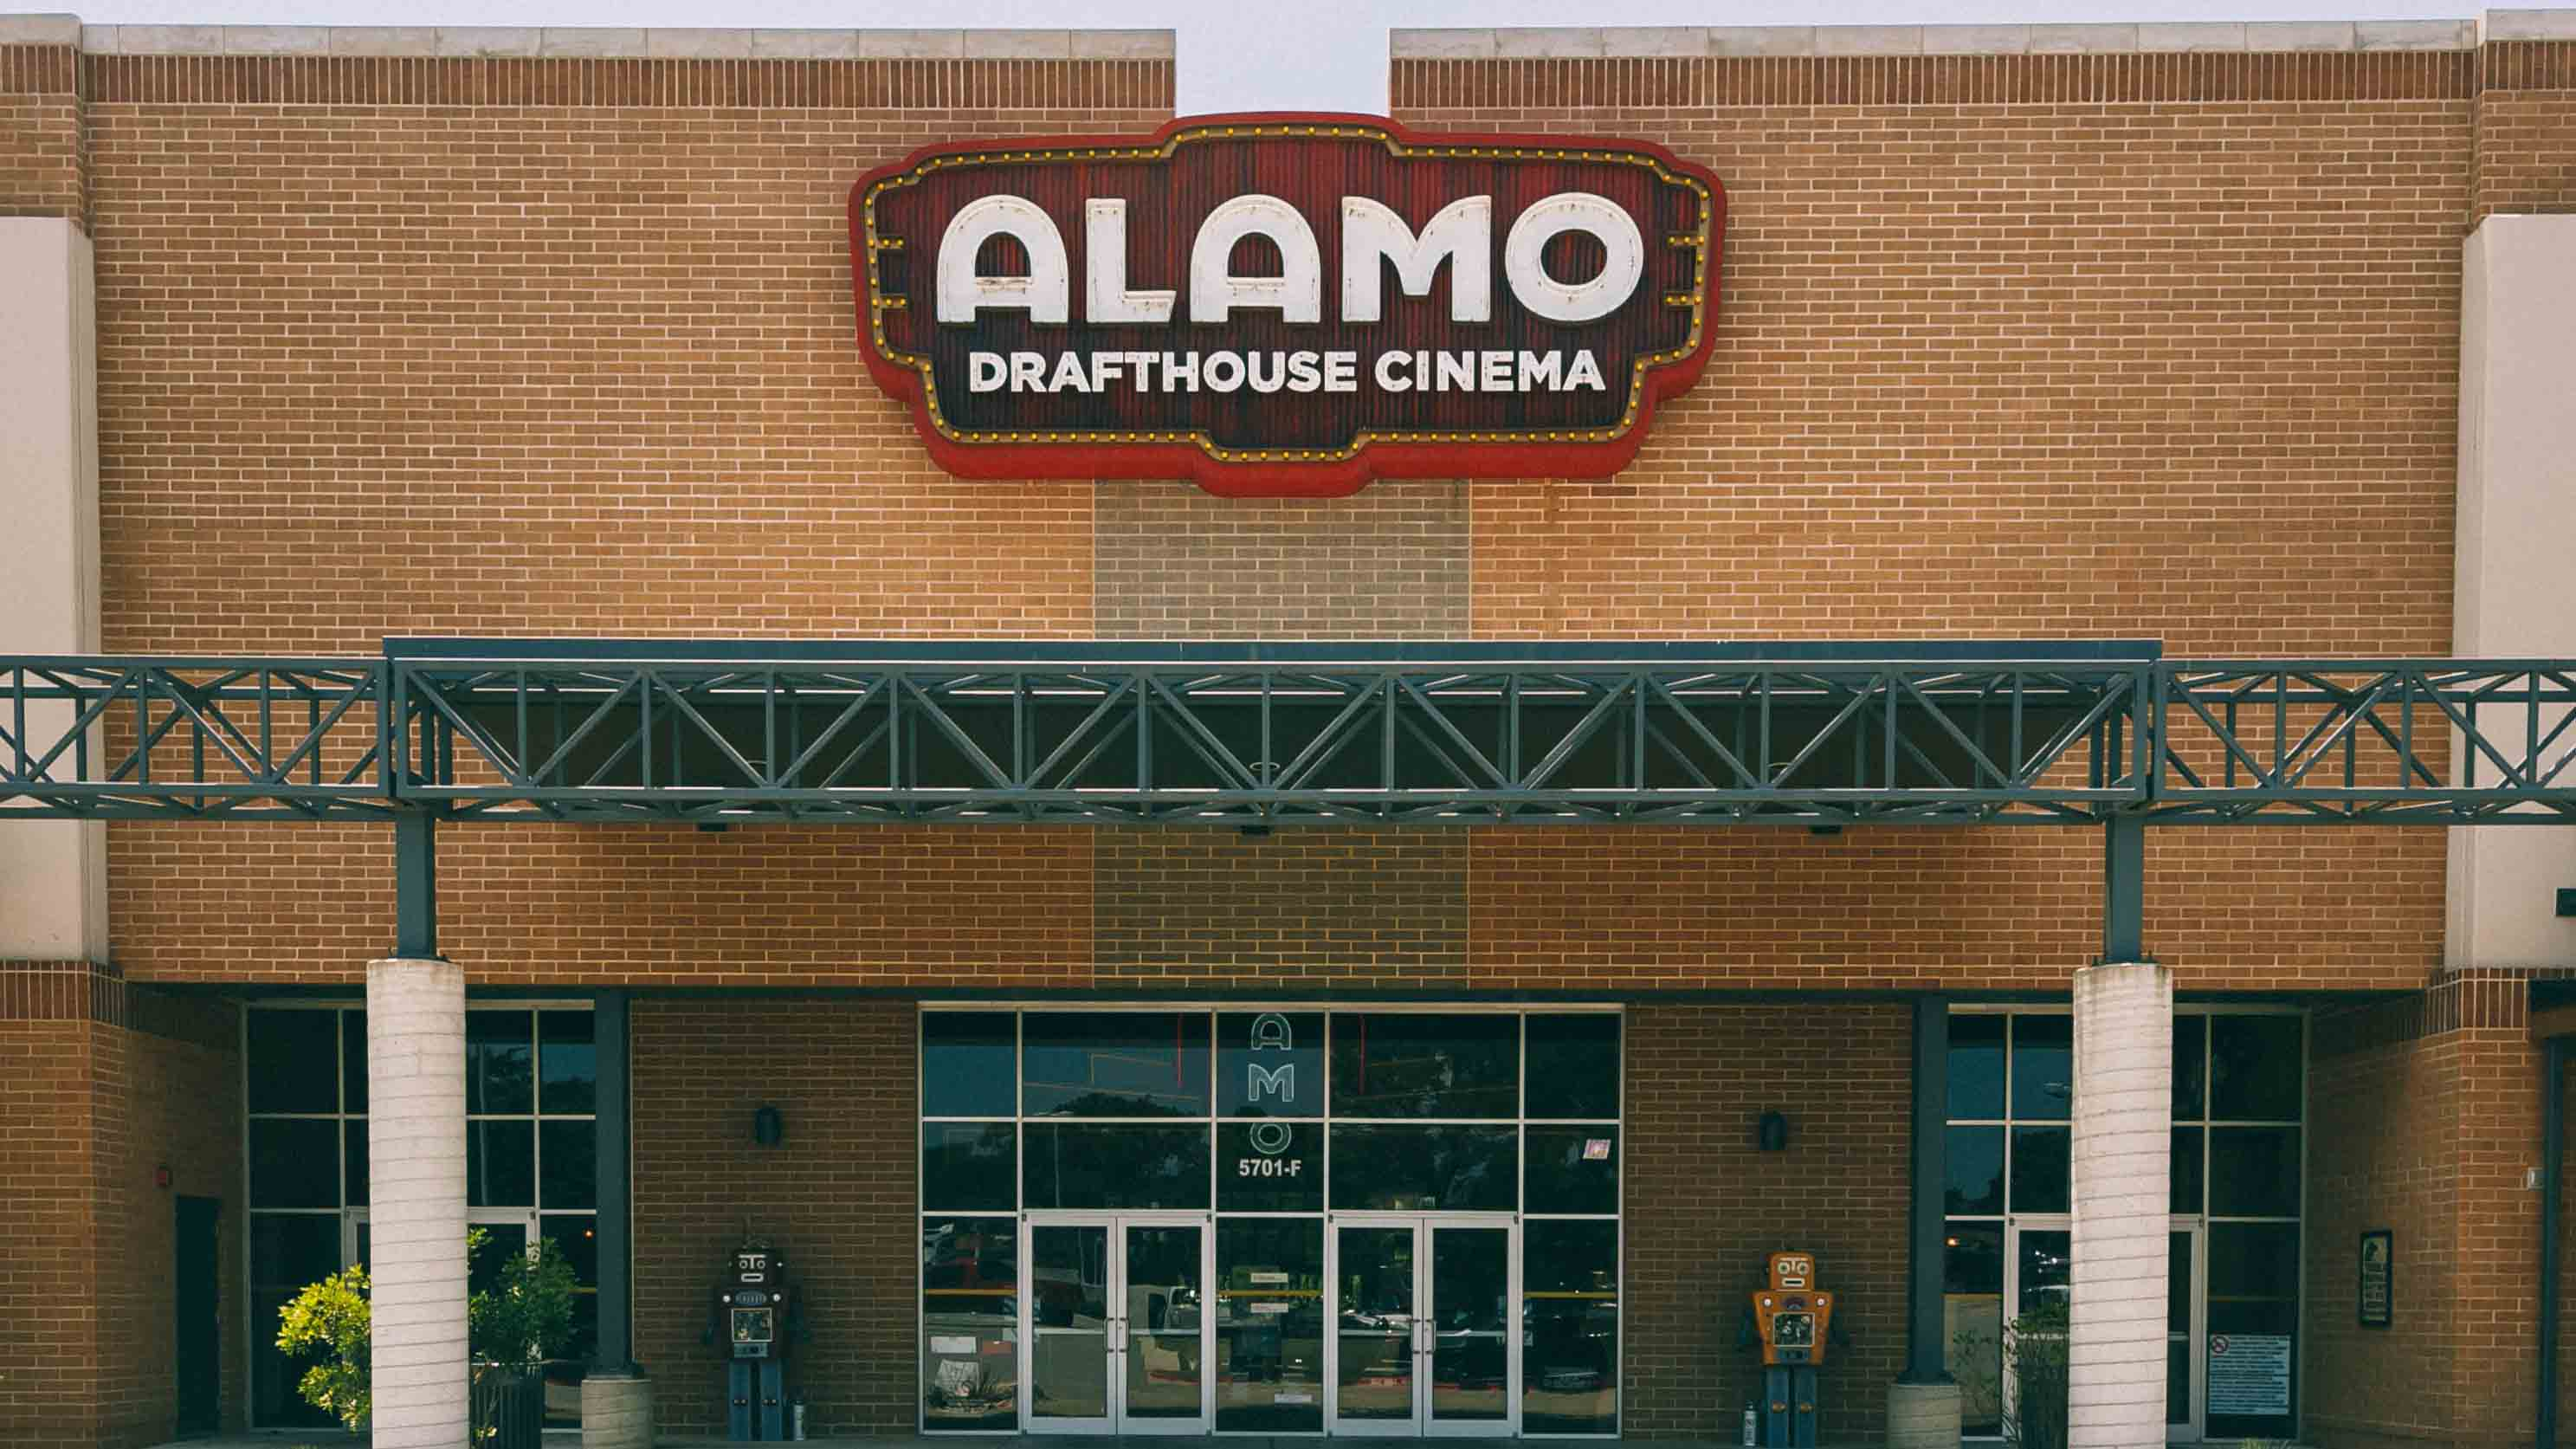 Image of Alamo Drafthouse Theater Sign